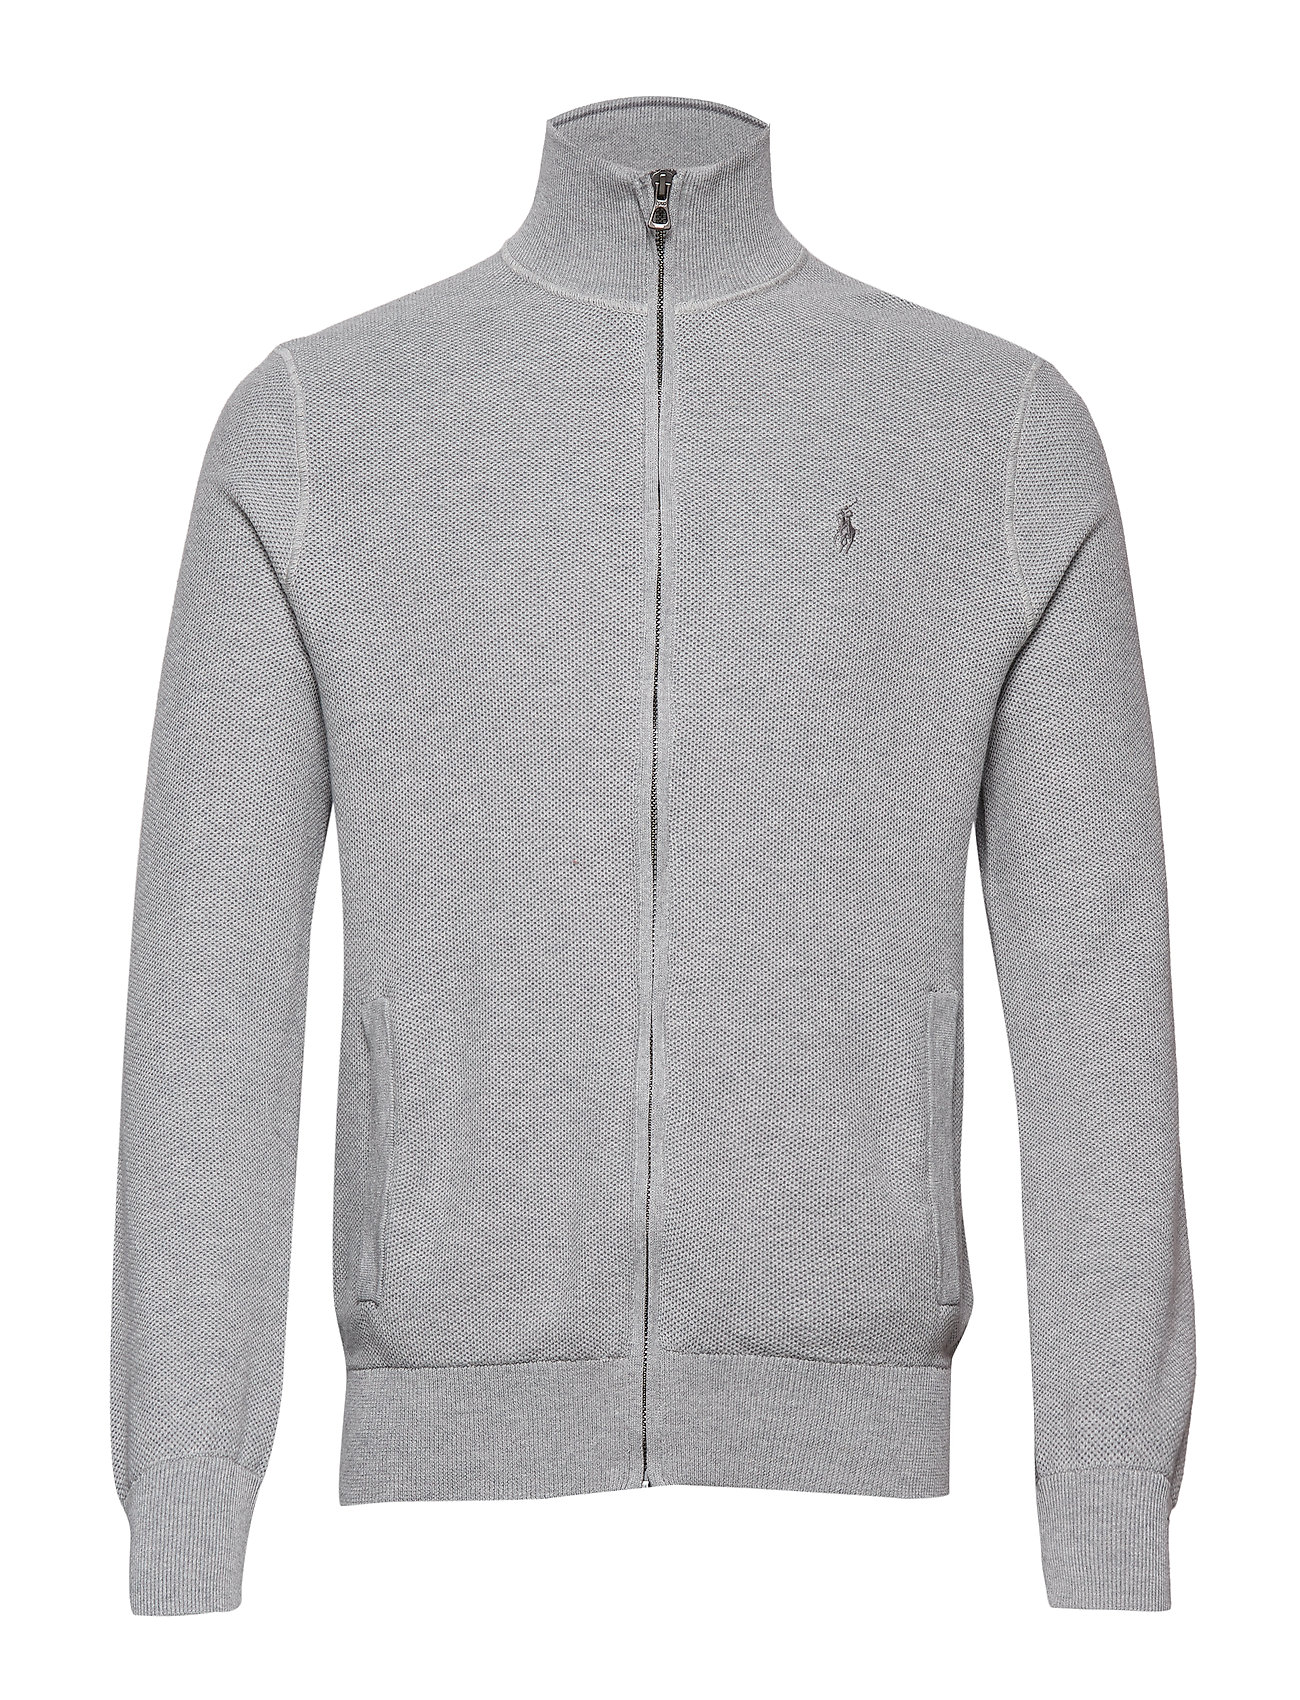 Polo Ralph Lauren Cotton Full-Zip Sweater - ANDOVER HEATHER